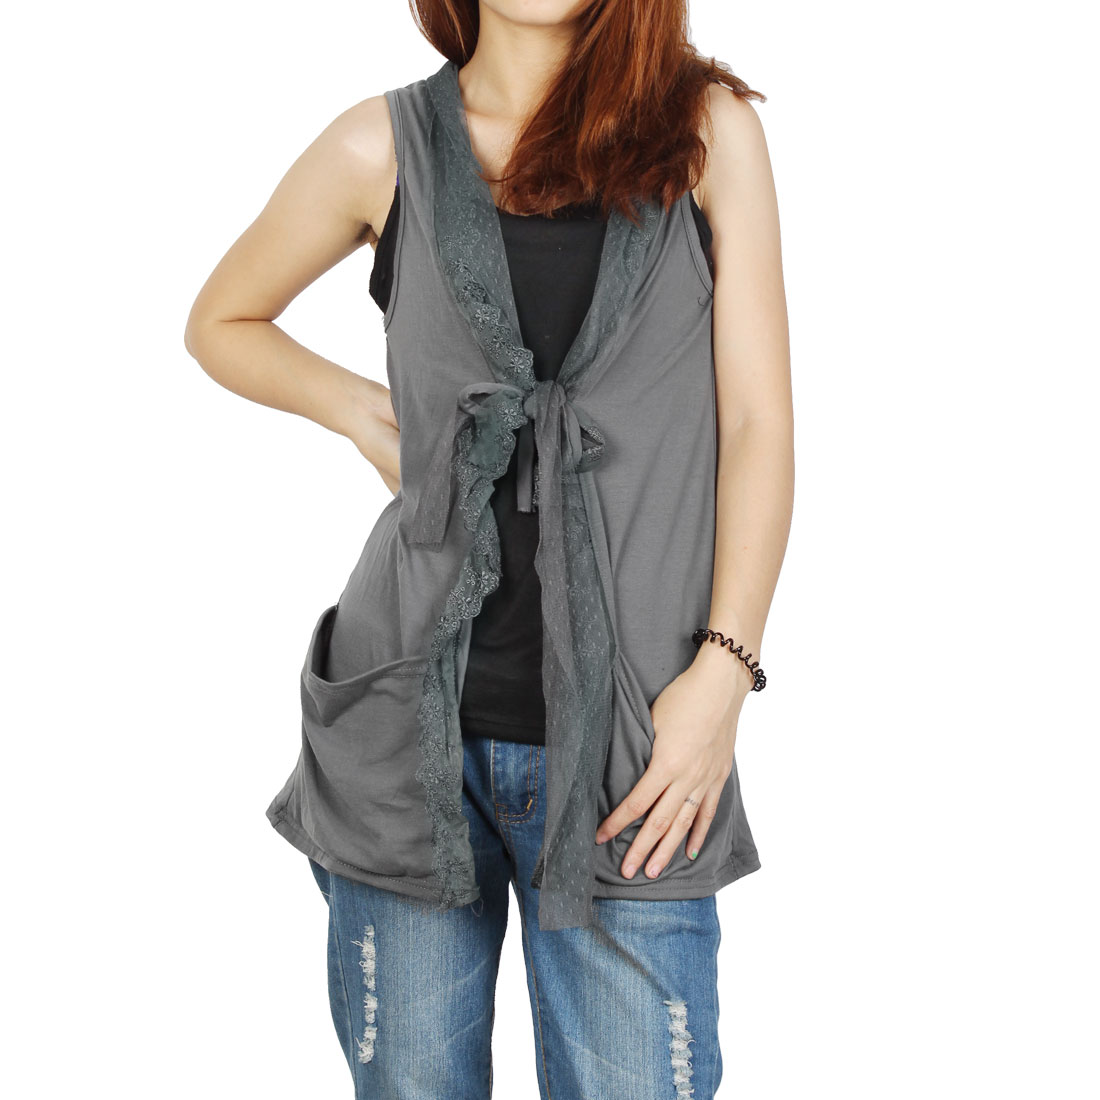 Close Fitting Slip Tank Top Black + Opening Front Shirt Pure Gray XS for Women